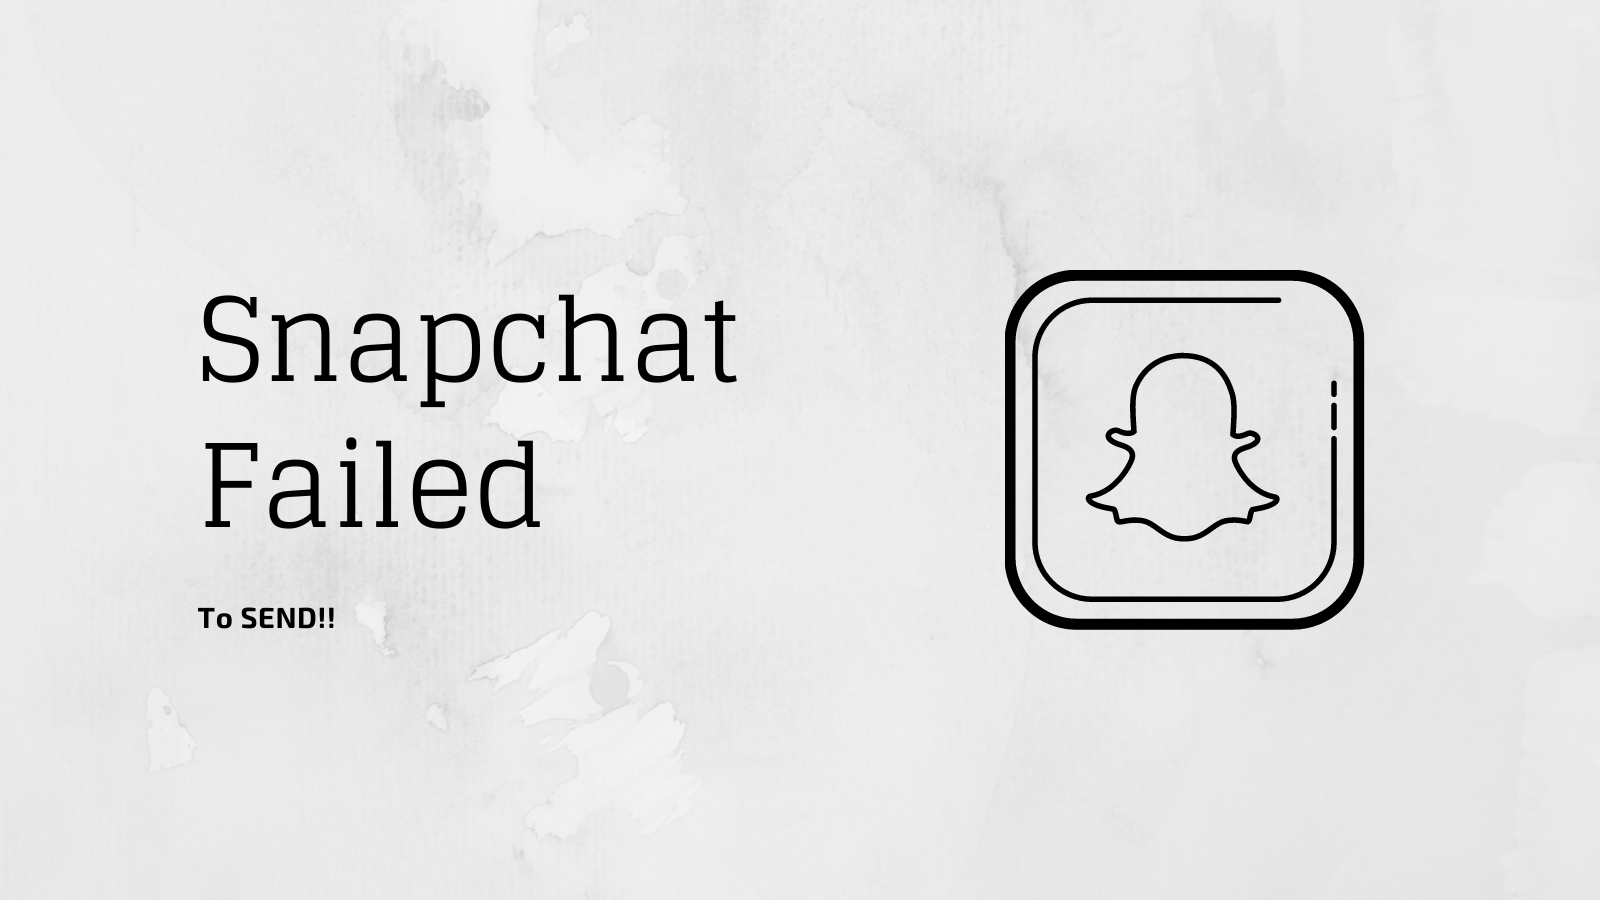 How To Fix Snapchat Failed To Send?